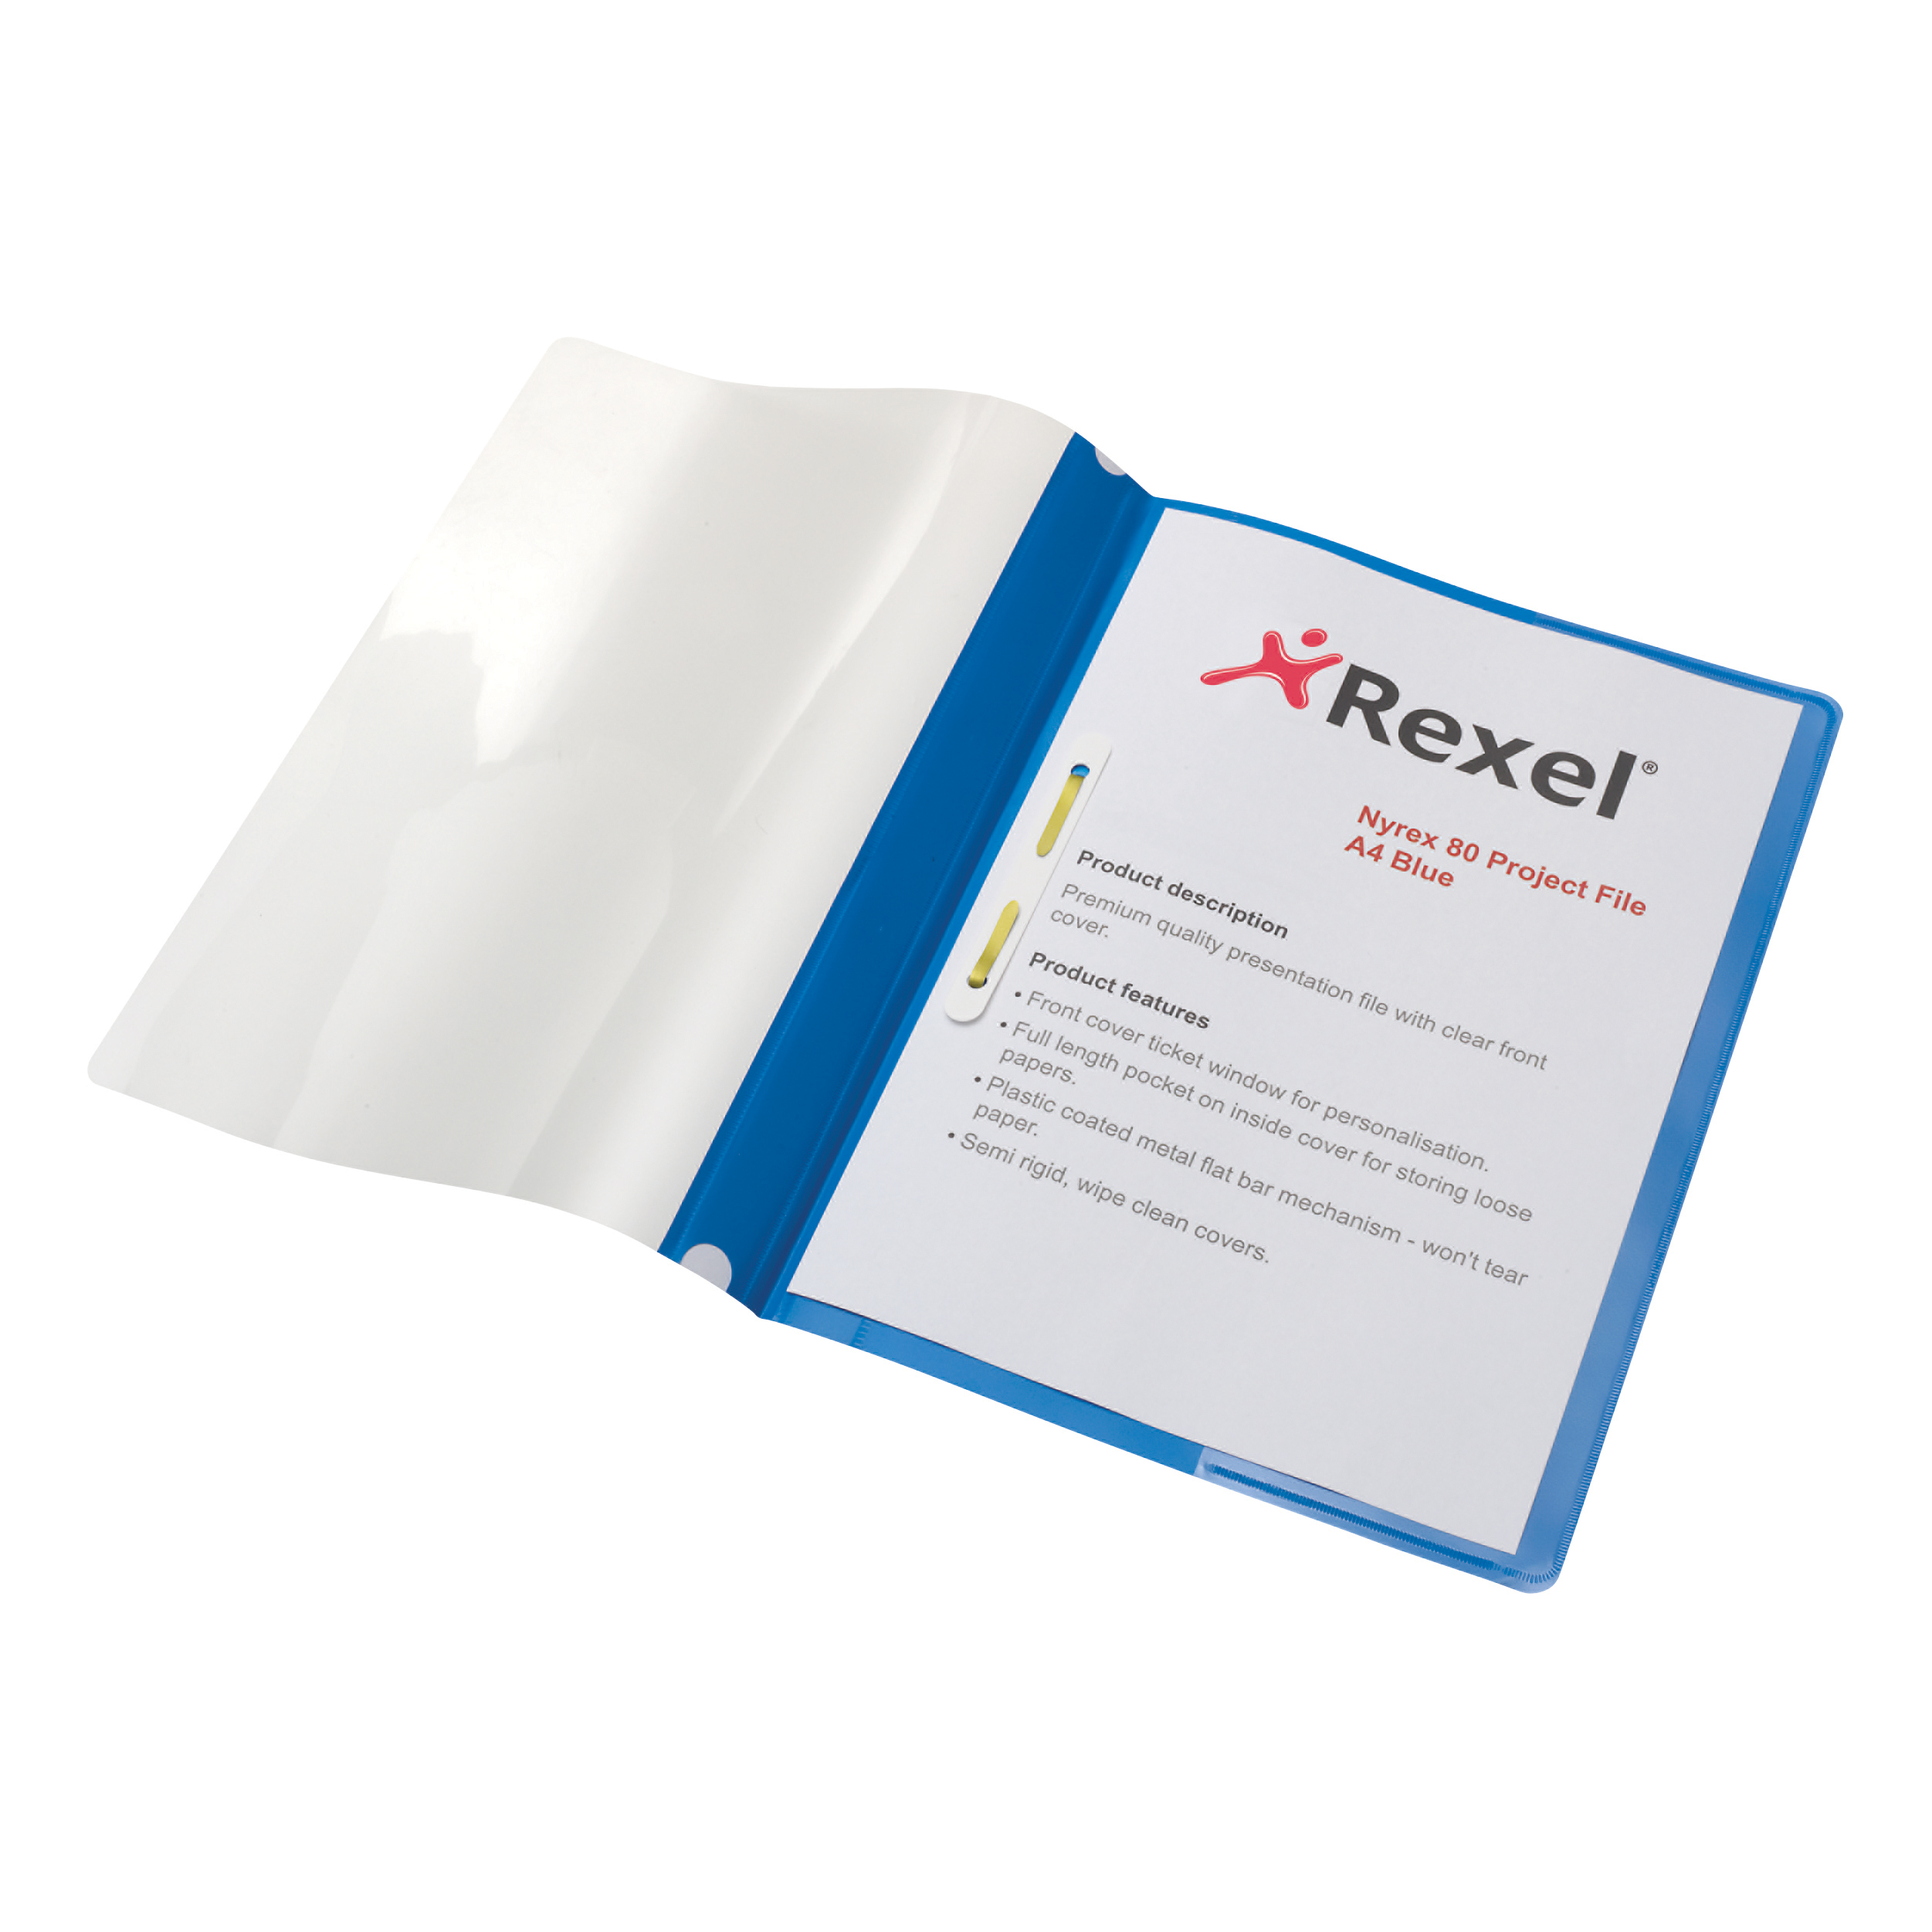 Part Files Rexel Nyrex Project Flat Bar File Semi-rigid Plastic Clear Front A4 Blue Ref 13045BU [Pack 5]